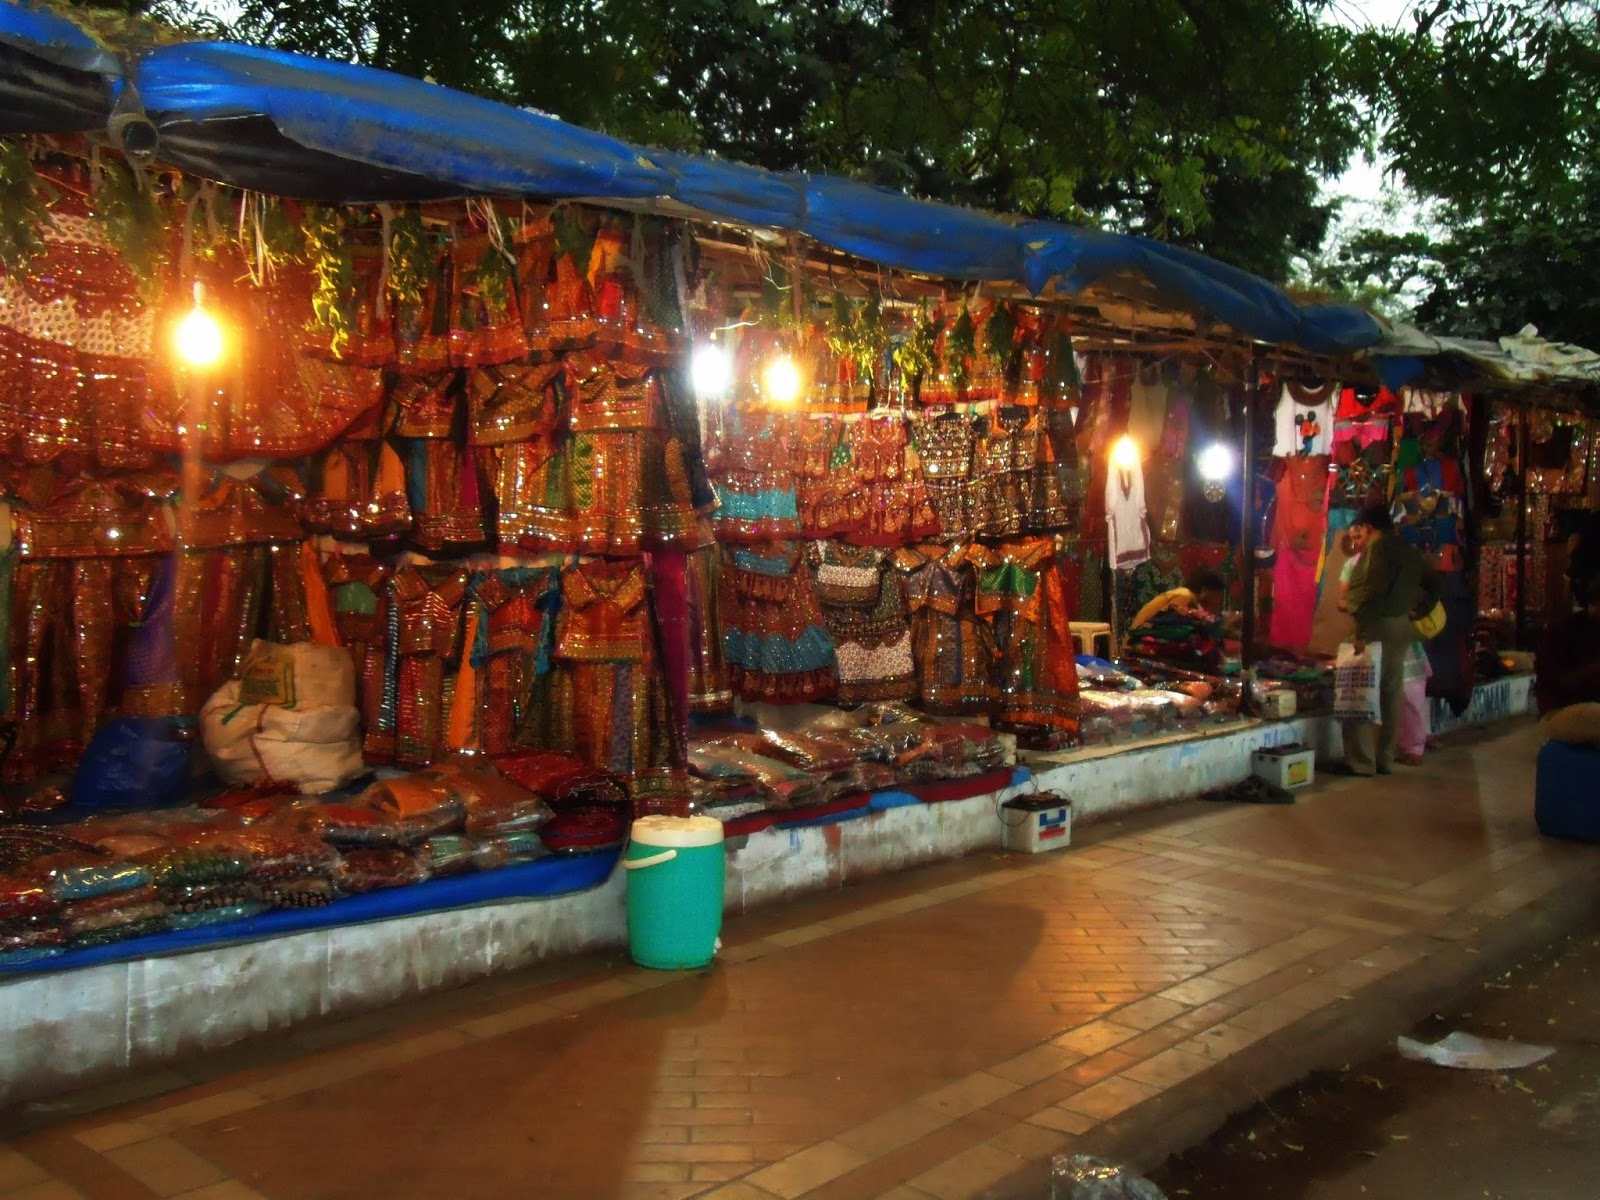 There is a wide network of shopping streets in the city where you can find traditional dresses, souvenirs, and local artwork. (Image:Jaimil joshiviawikimediaCC BY-SA 3.0)